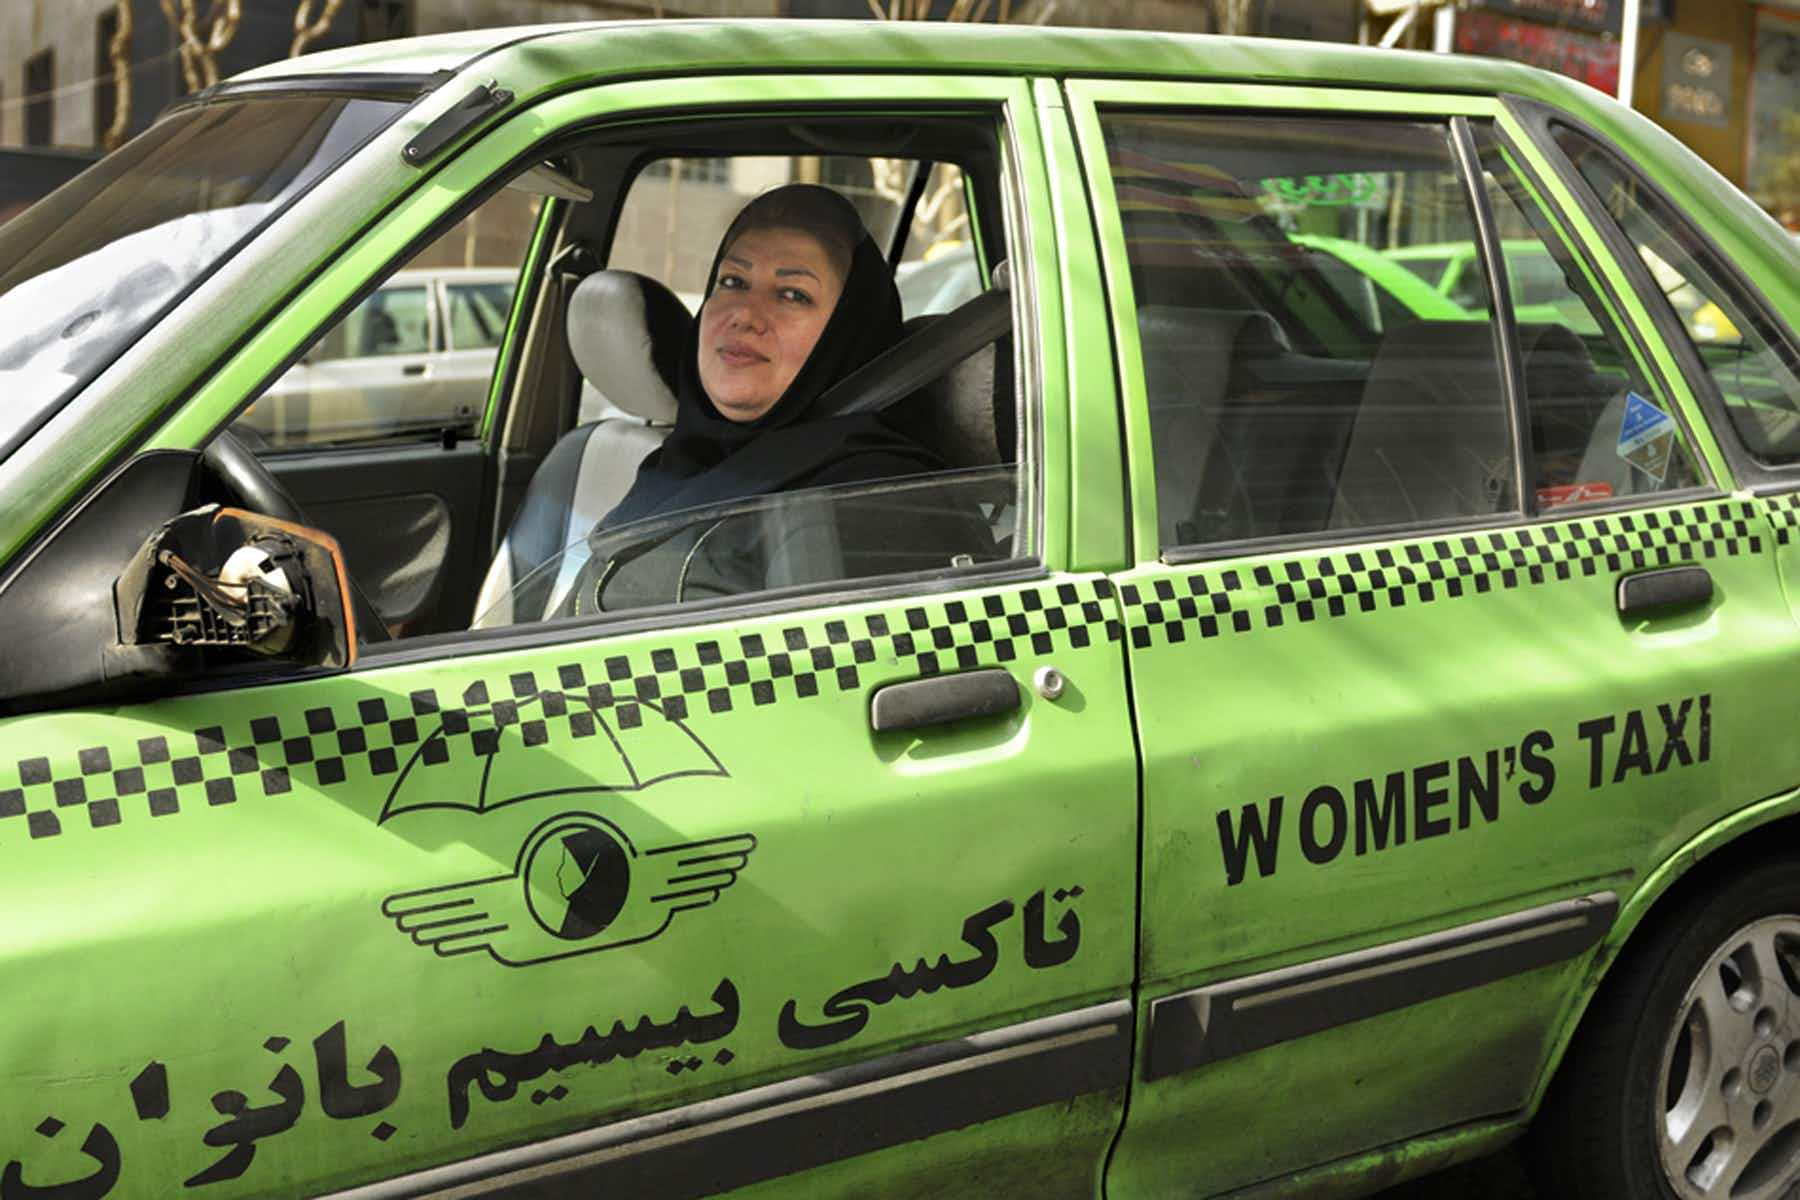 This photo exhibition traces the lives of Iranian women over the past 30 years